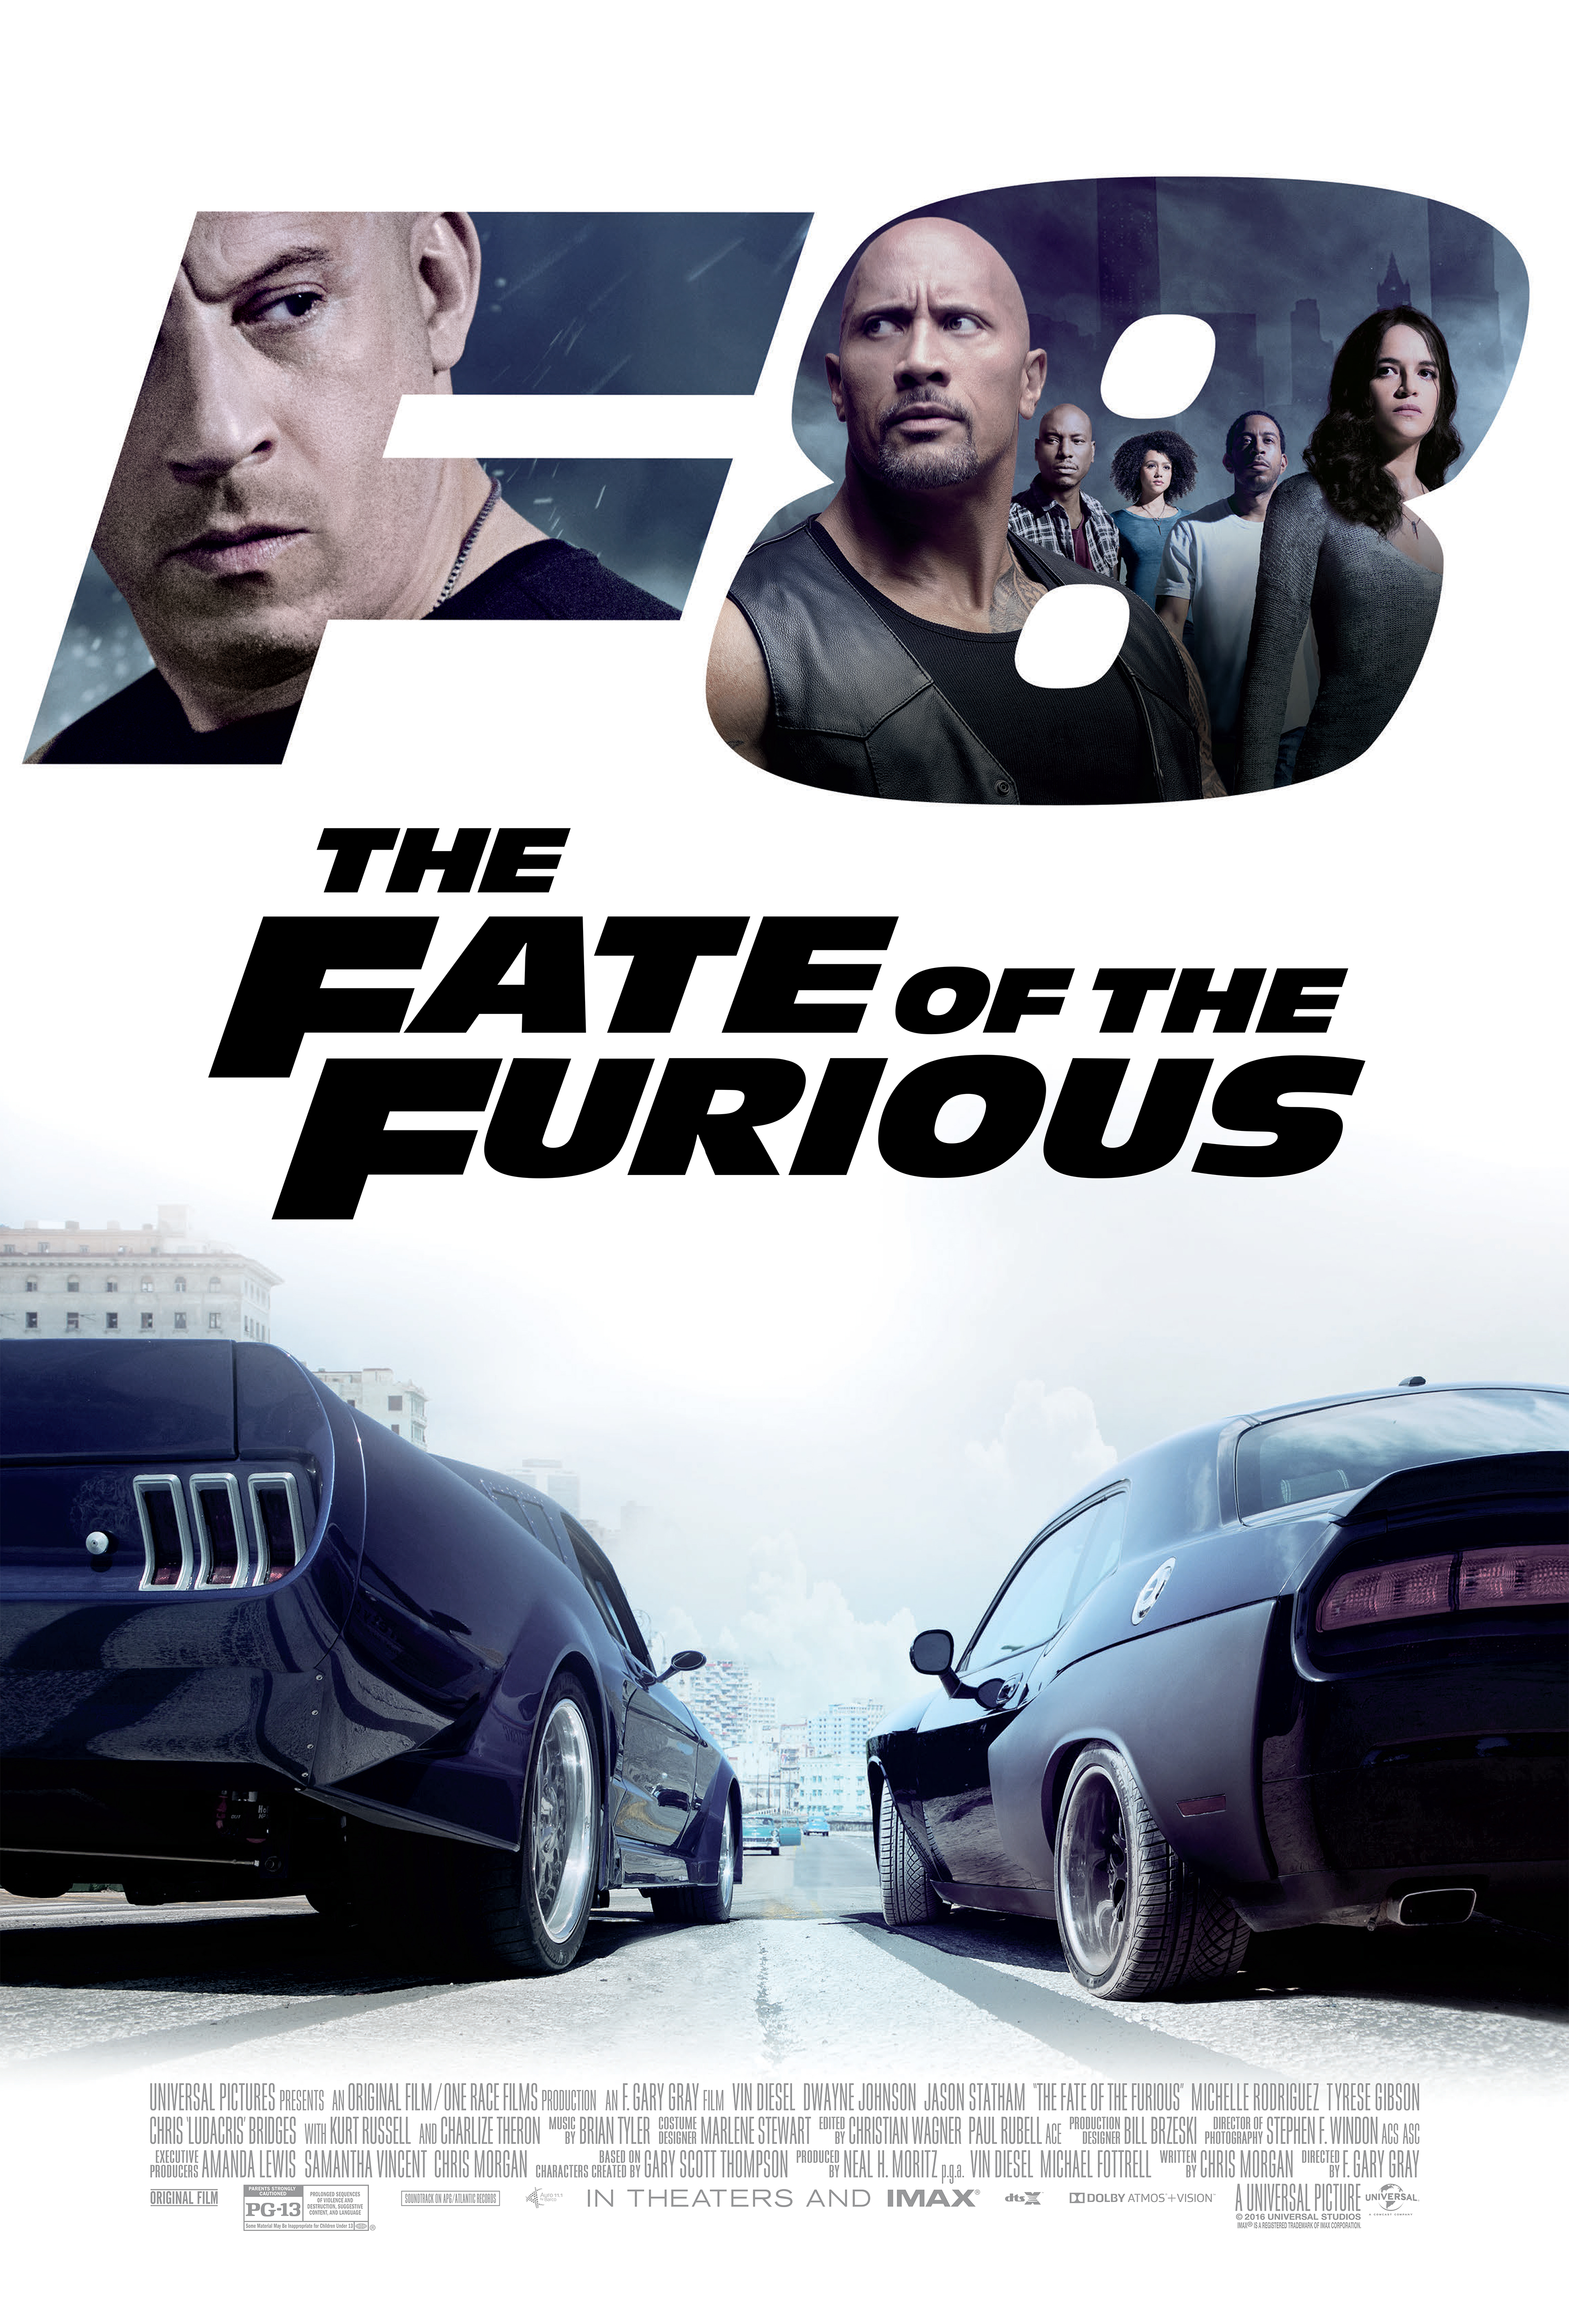 The poster for The Fate of the Furious.